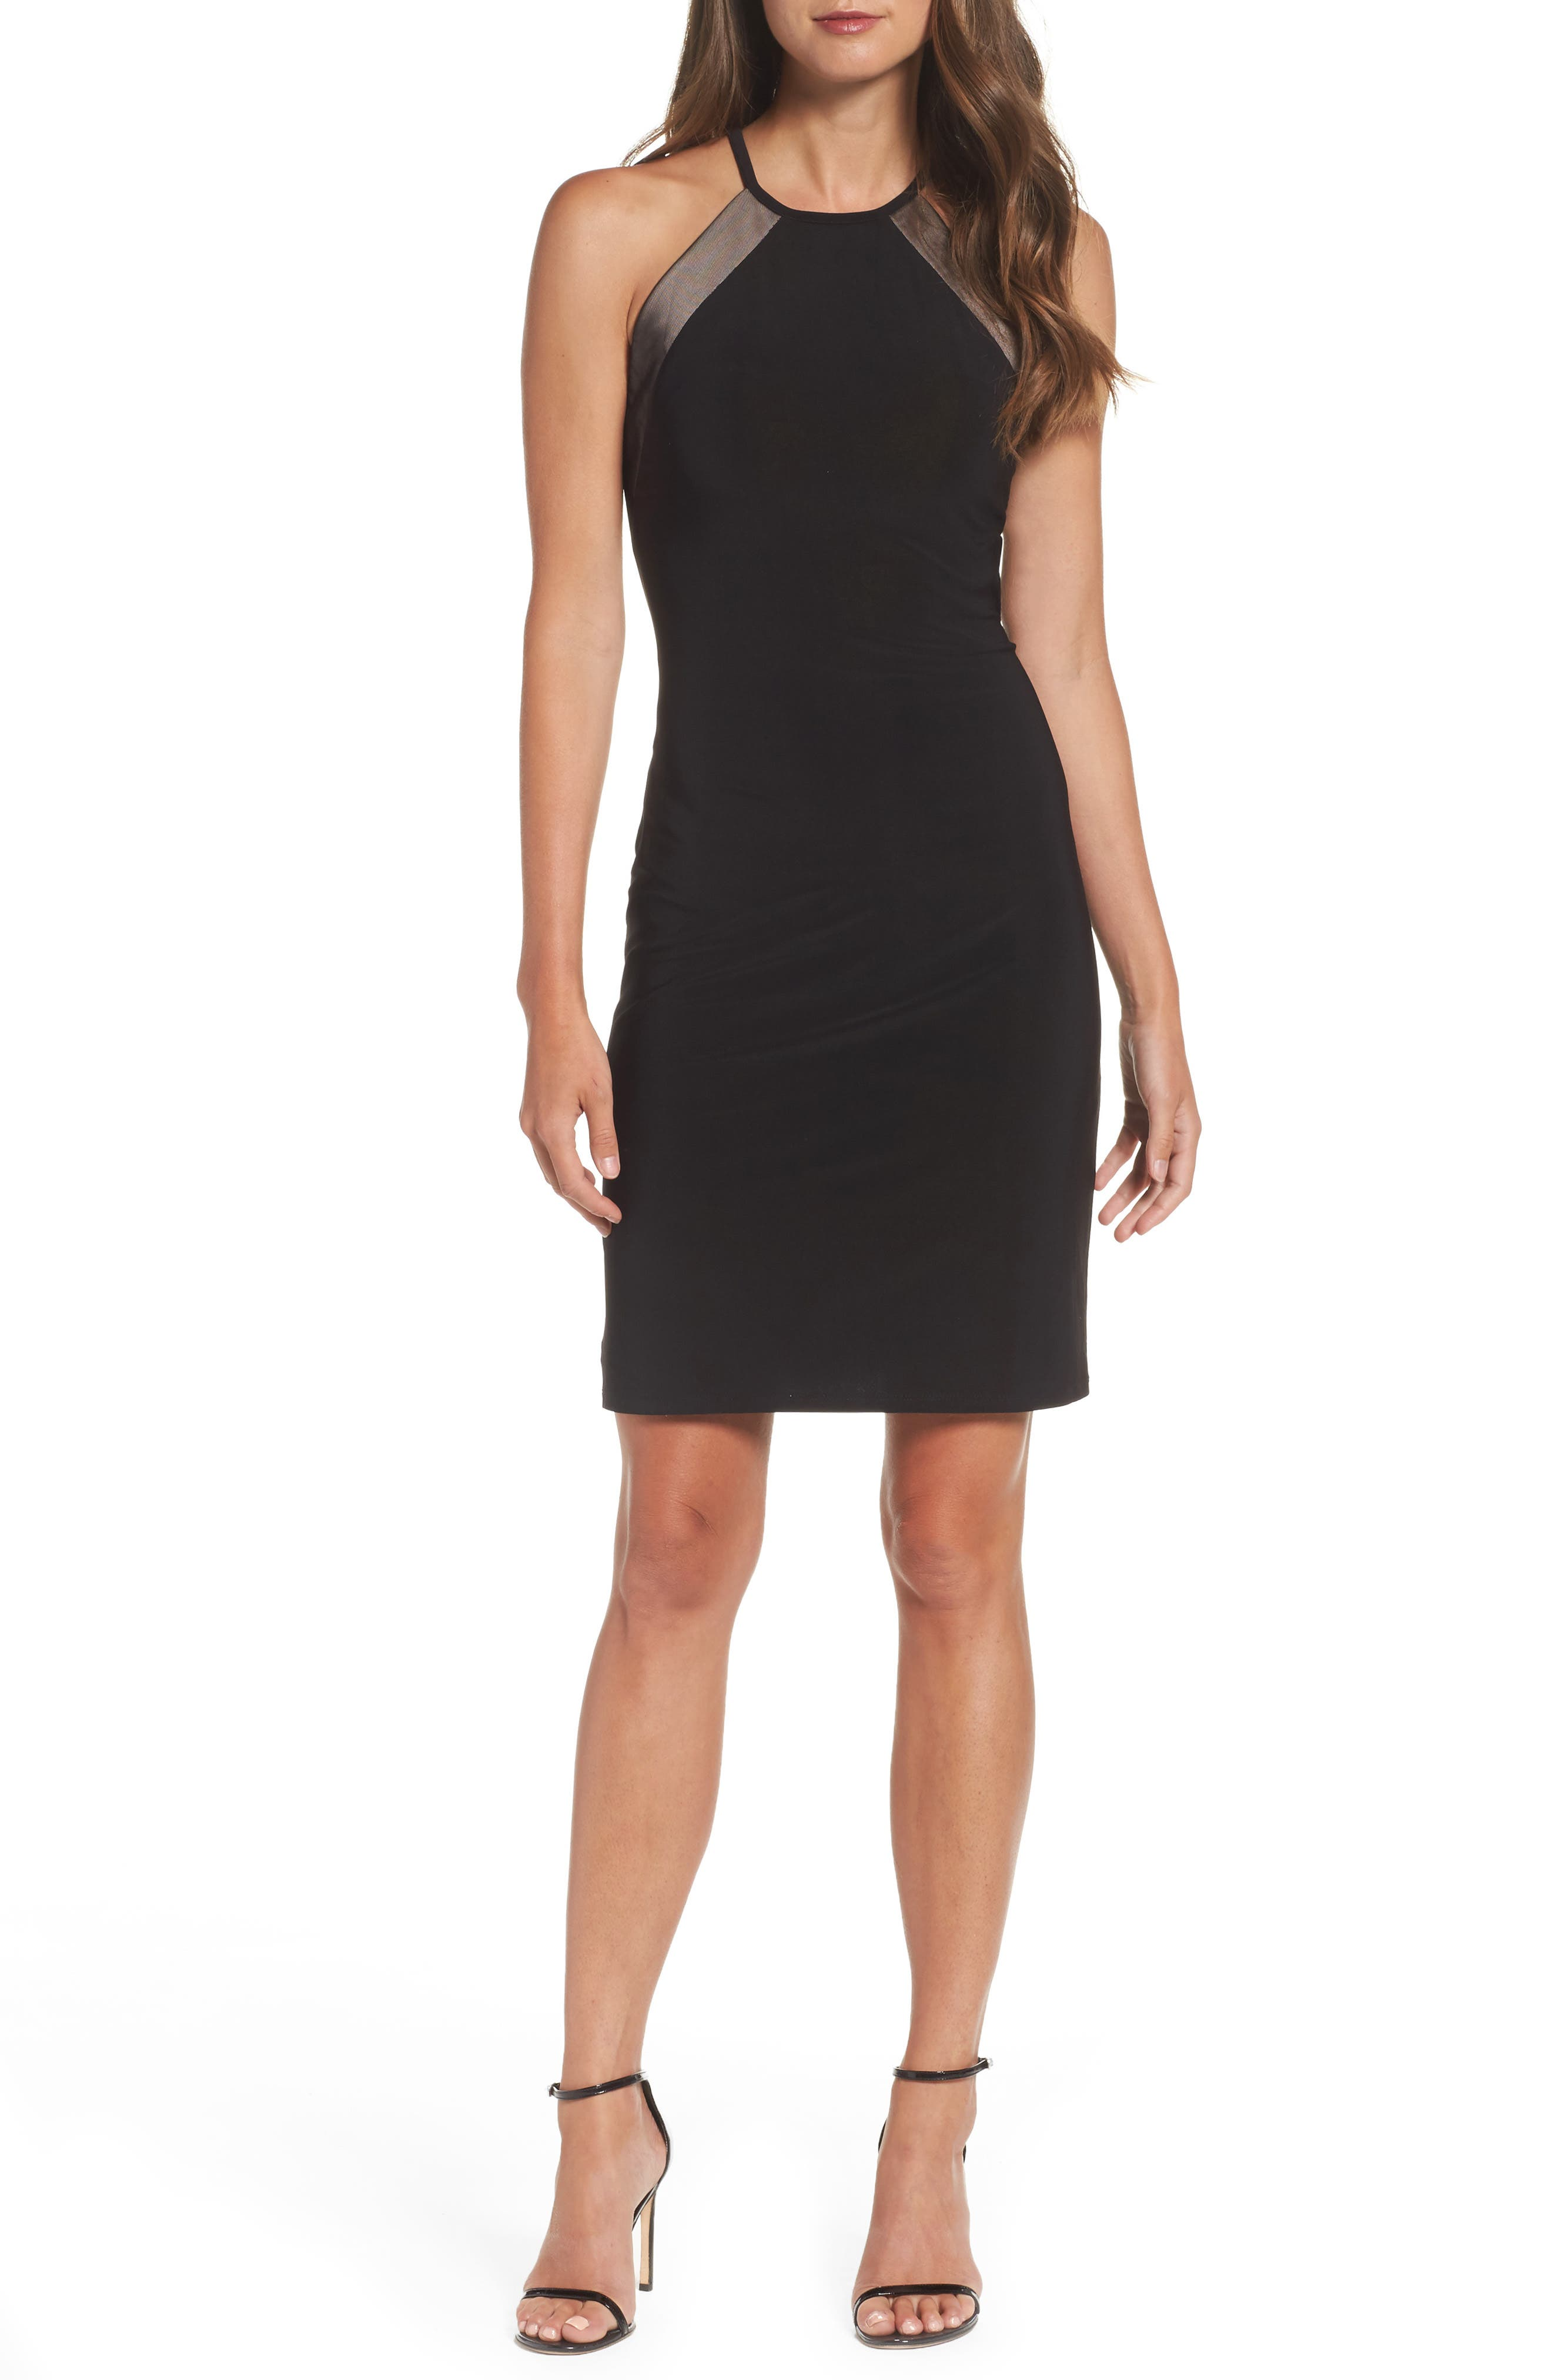 Willus Sheath Dress,                             Main thumbnail 1, color,                             Black/ Nude